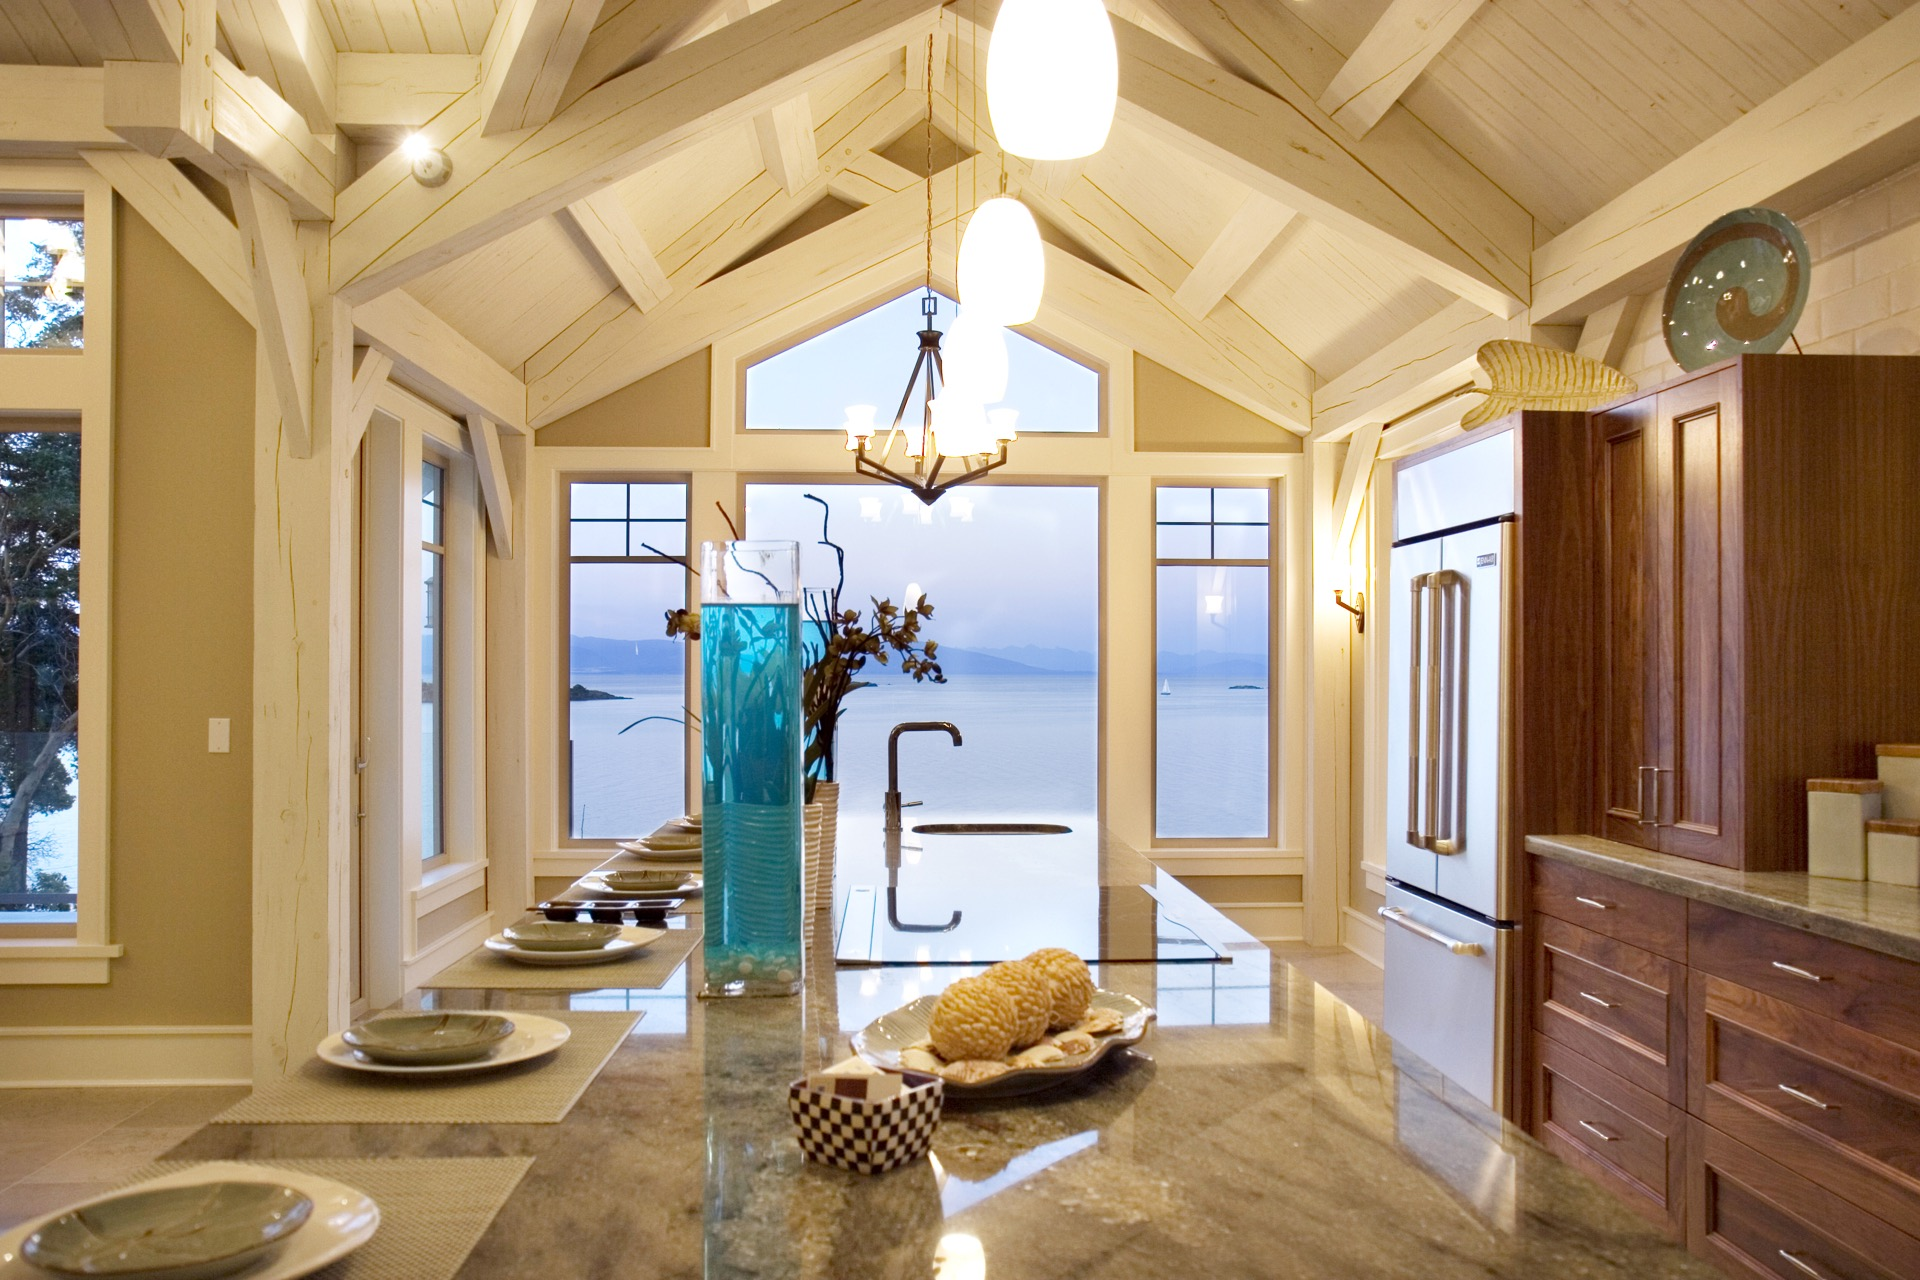 Paul Dabbs Custom Homes - Dolphin 100.jpg